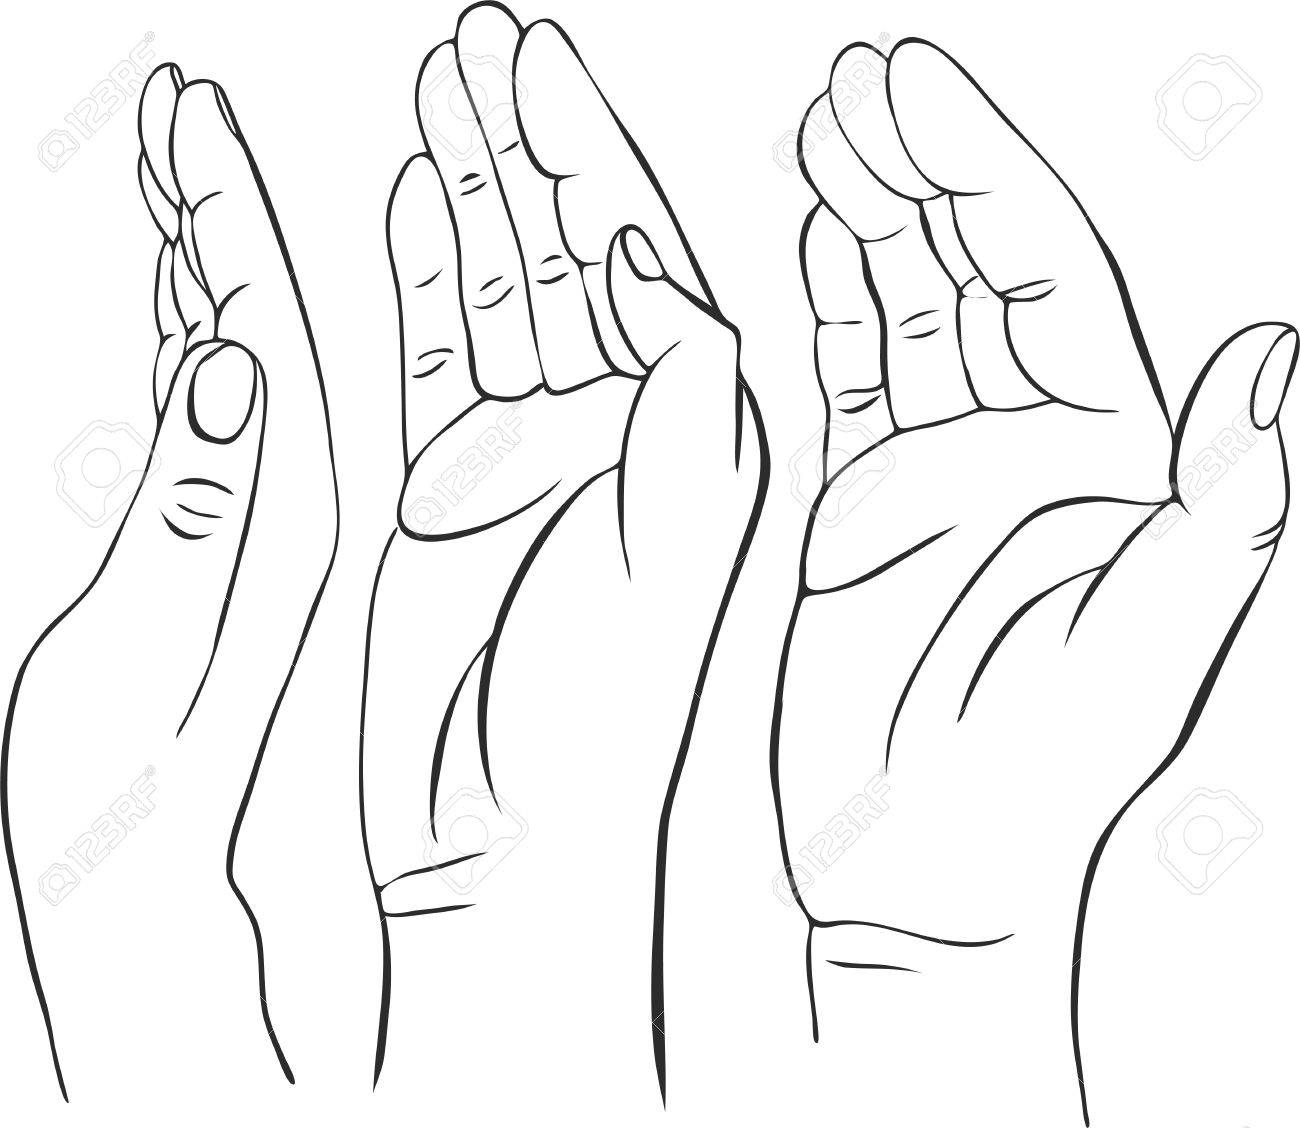 1300x1128 Three Hands With Open Palms, Hand Drawn Vector Illustration